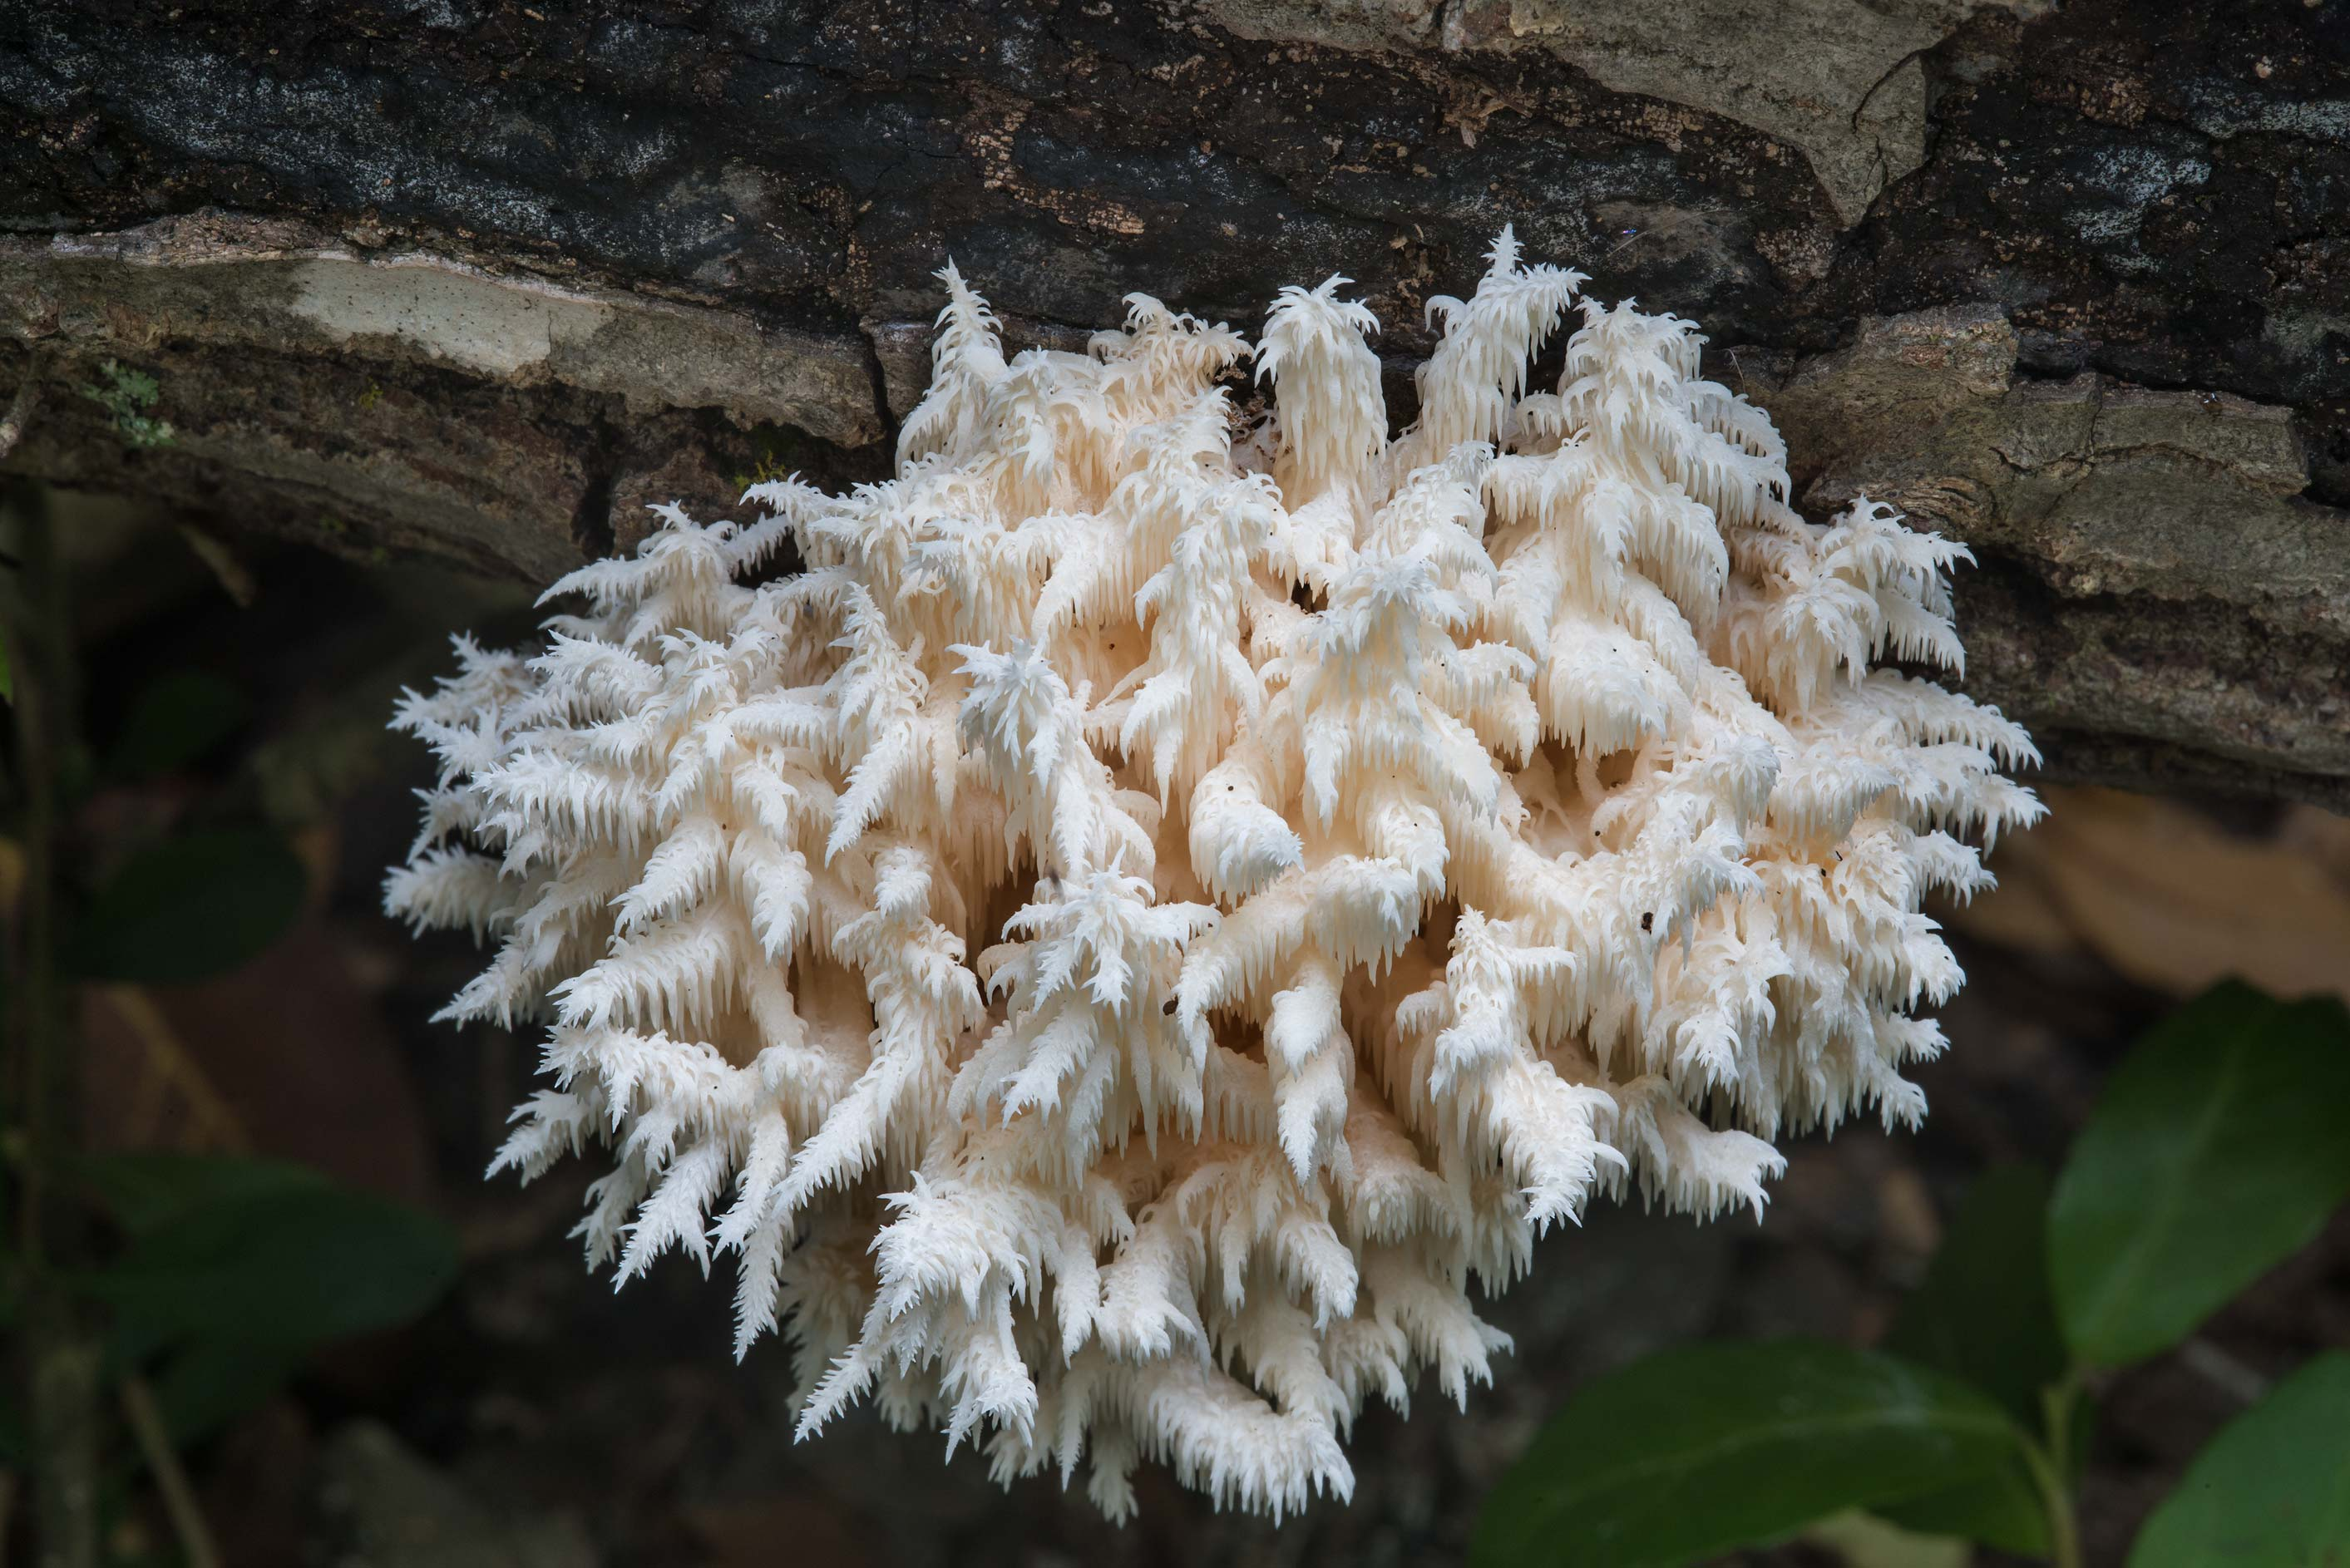 Coral tooth mushroom (Hericium coralloides) on a...Nature Trail. College Station, Texas